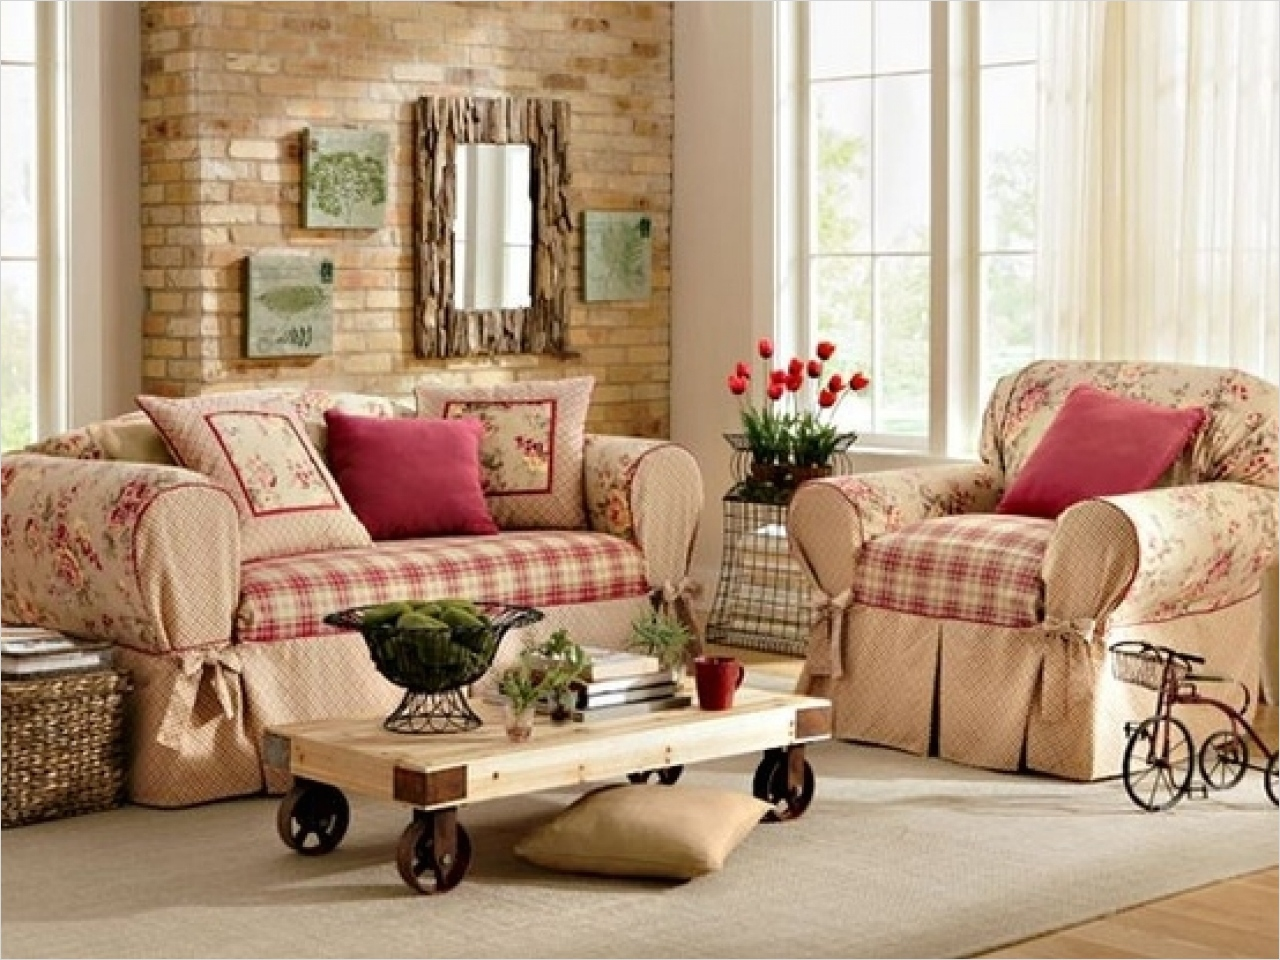 45 Amazing Ideas Country Chic Living Room 82 Country Cottage Living Rooms Style – Doherty Living Room X Country Cottage Living Rooms theme 3